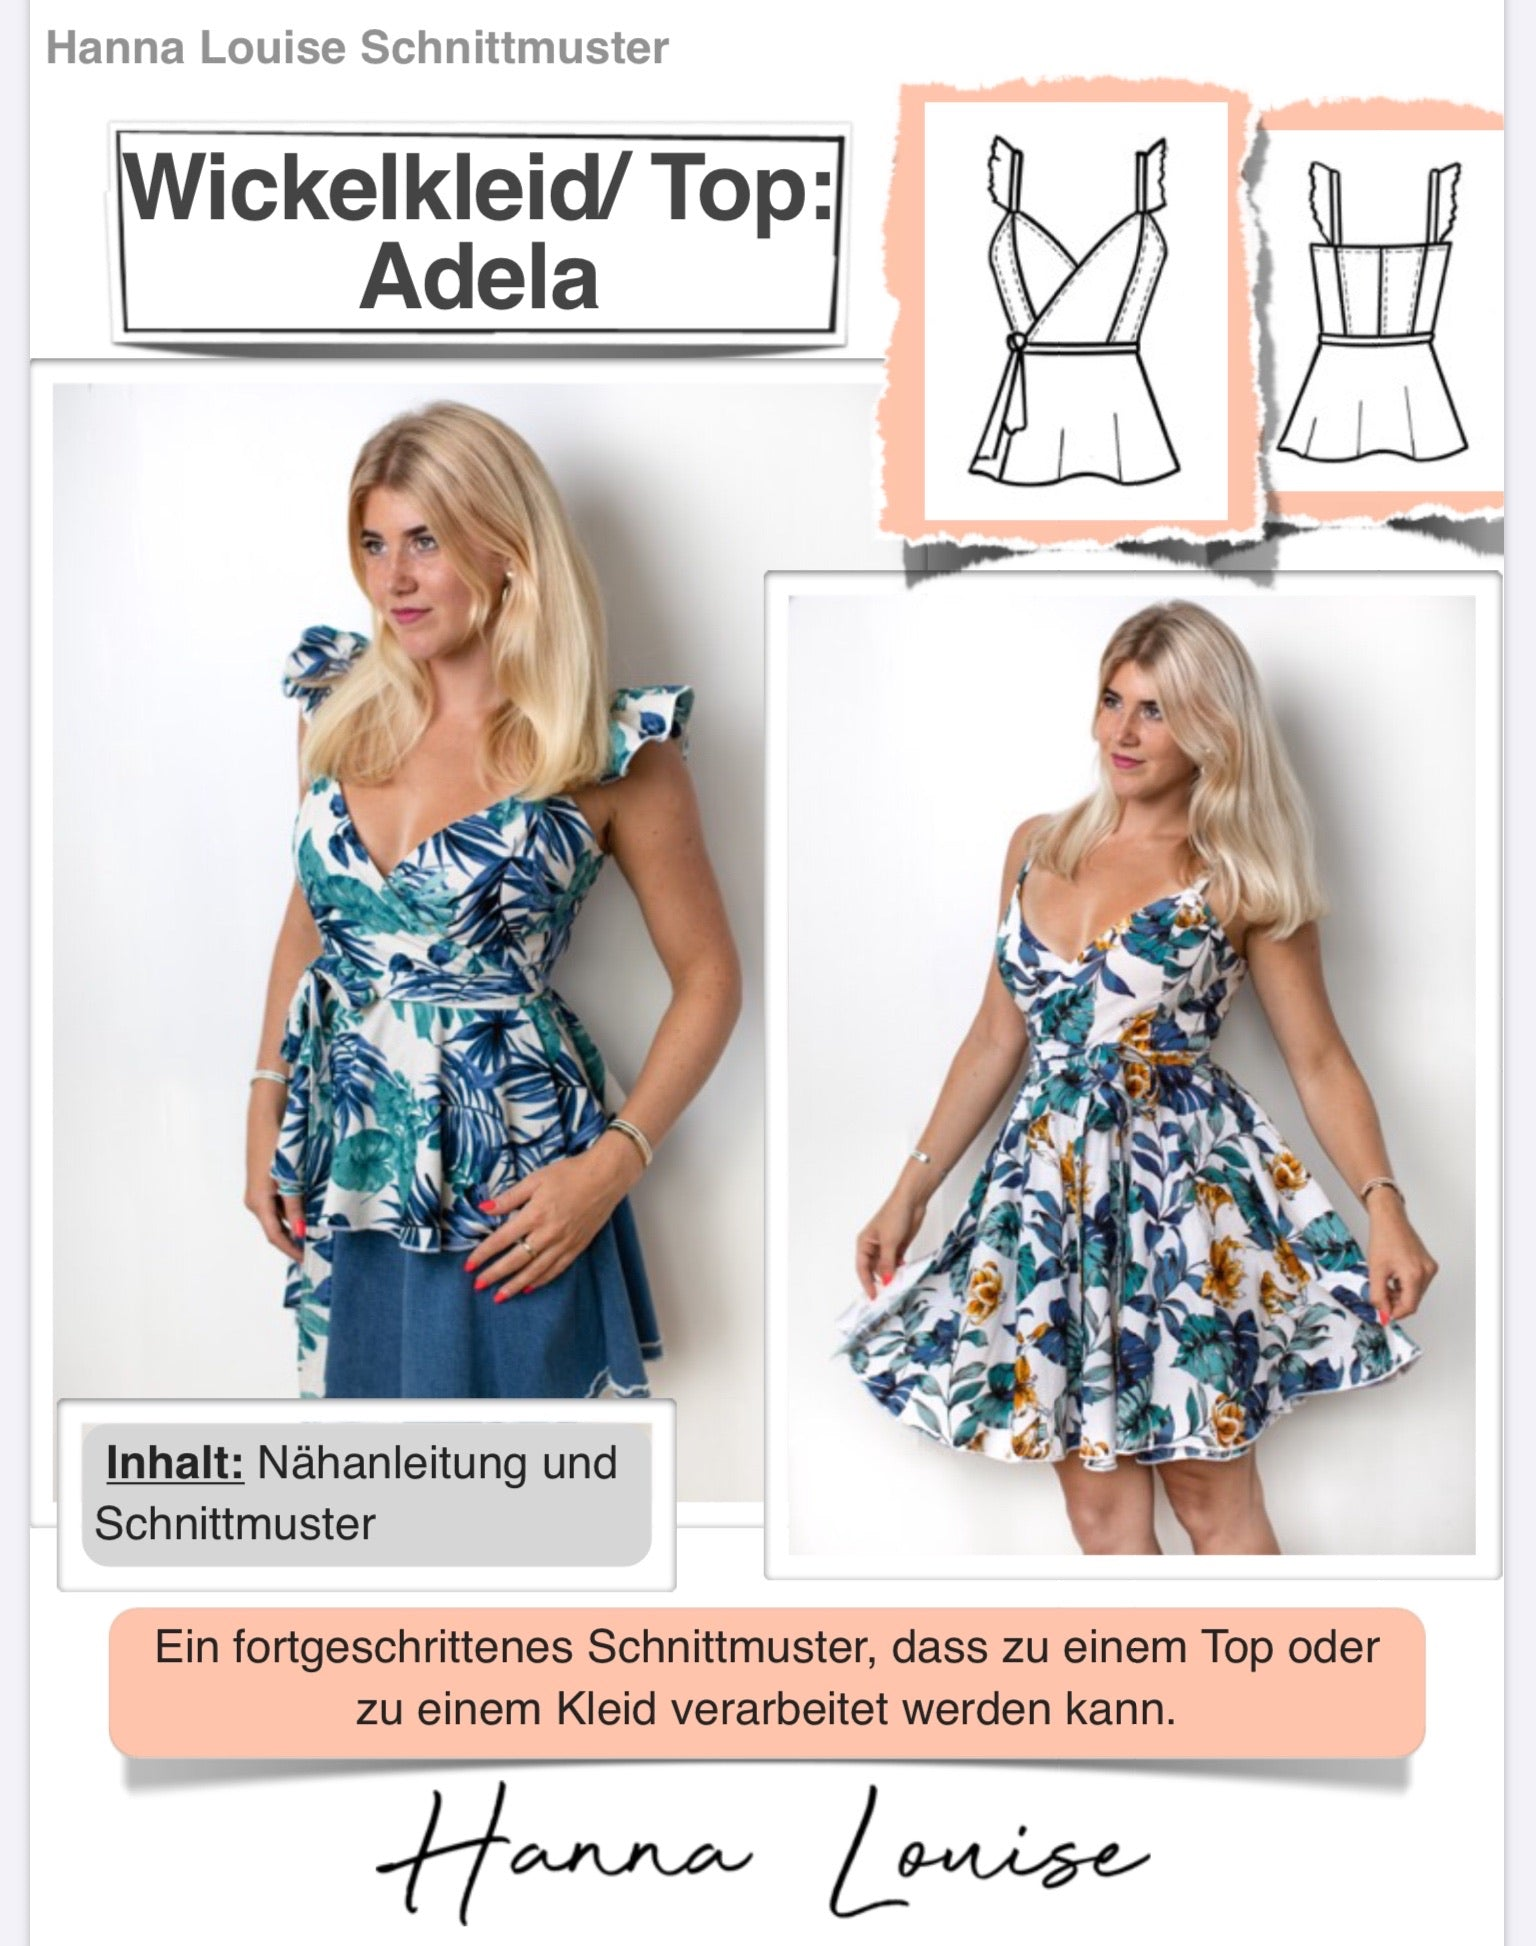 Wickelkleid/ Top #Adela